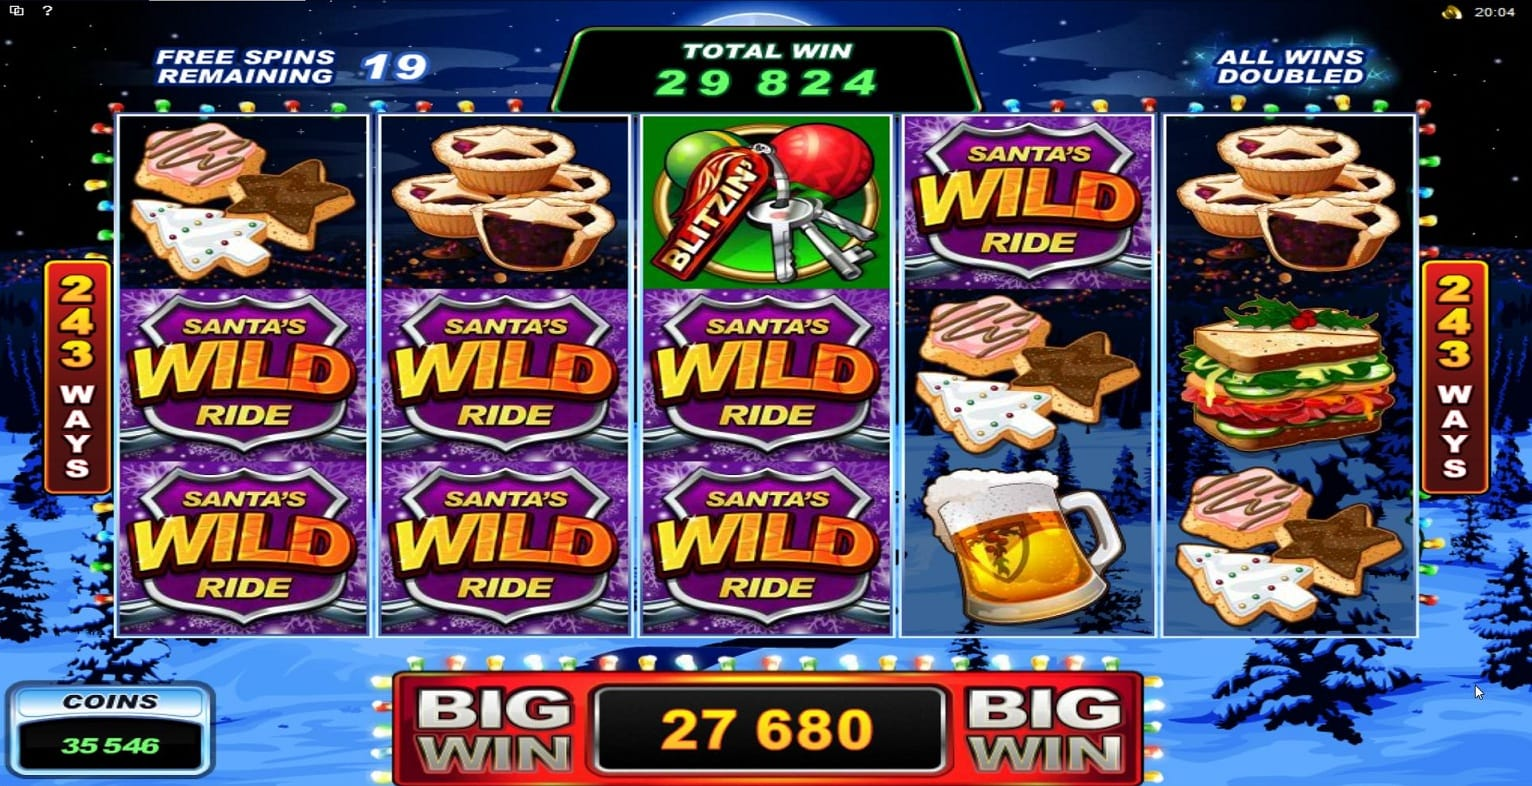 Santa's Wild Ride Christmas Slot Game Gameplay